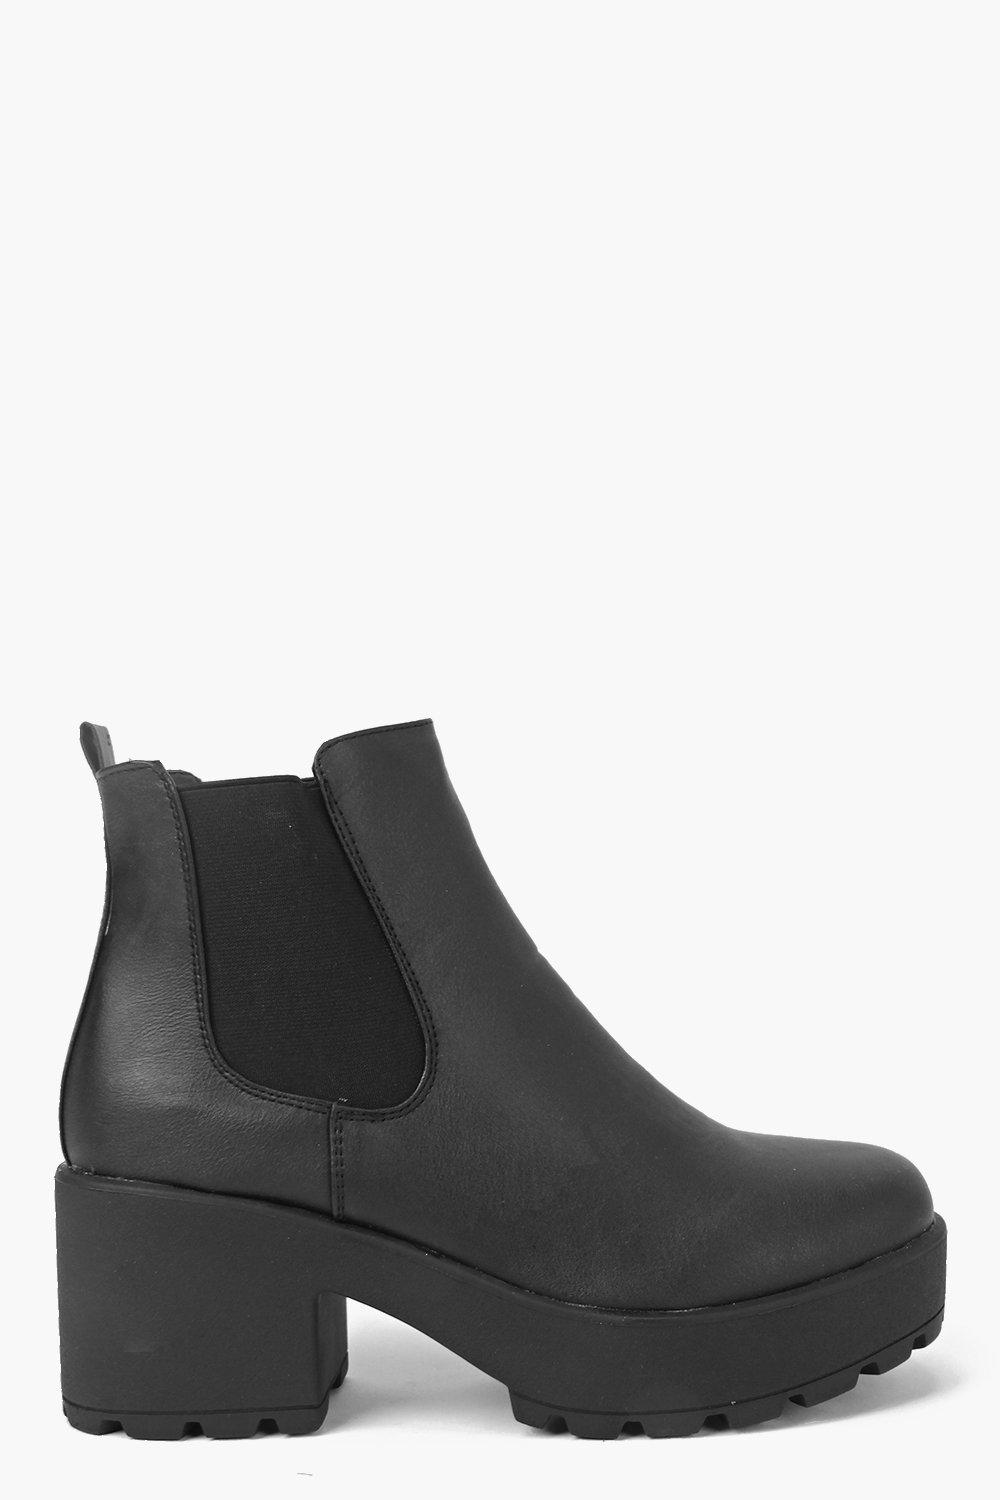 Leah Black Heel Cleated Chelsea Boot